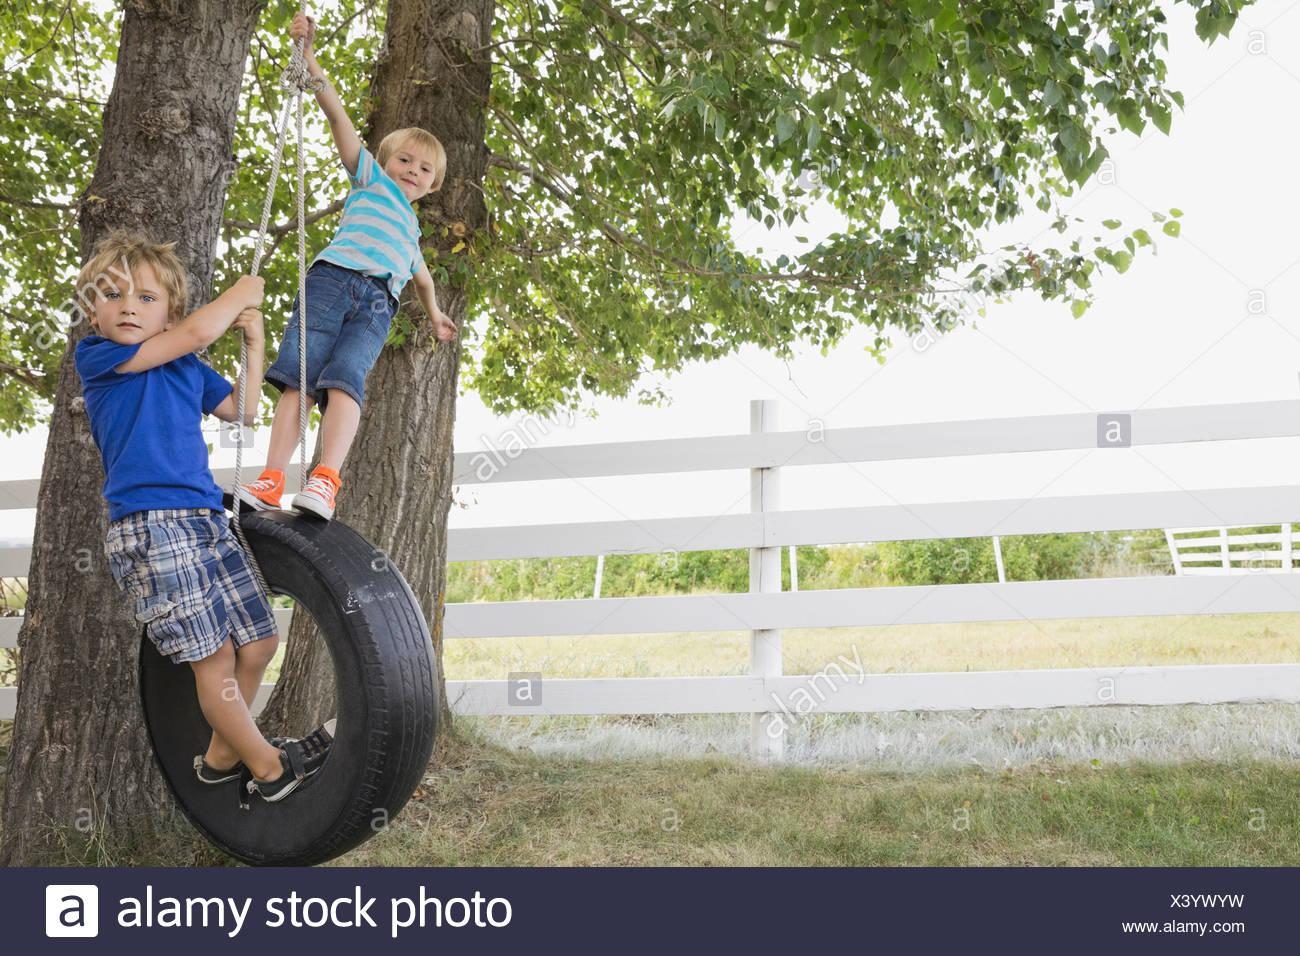 Playful boys standing on tire swing Stock Photo